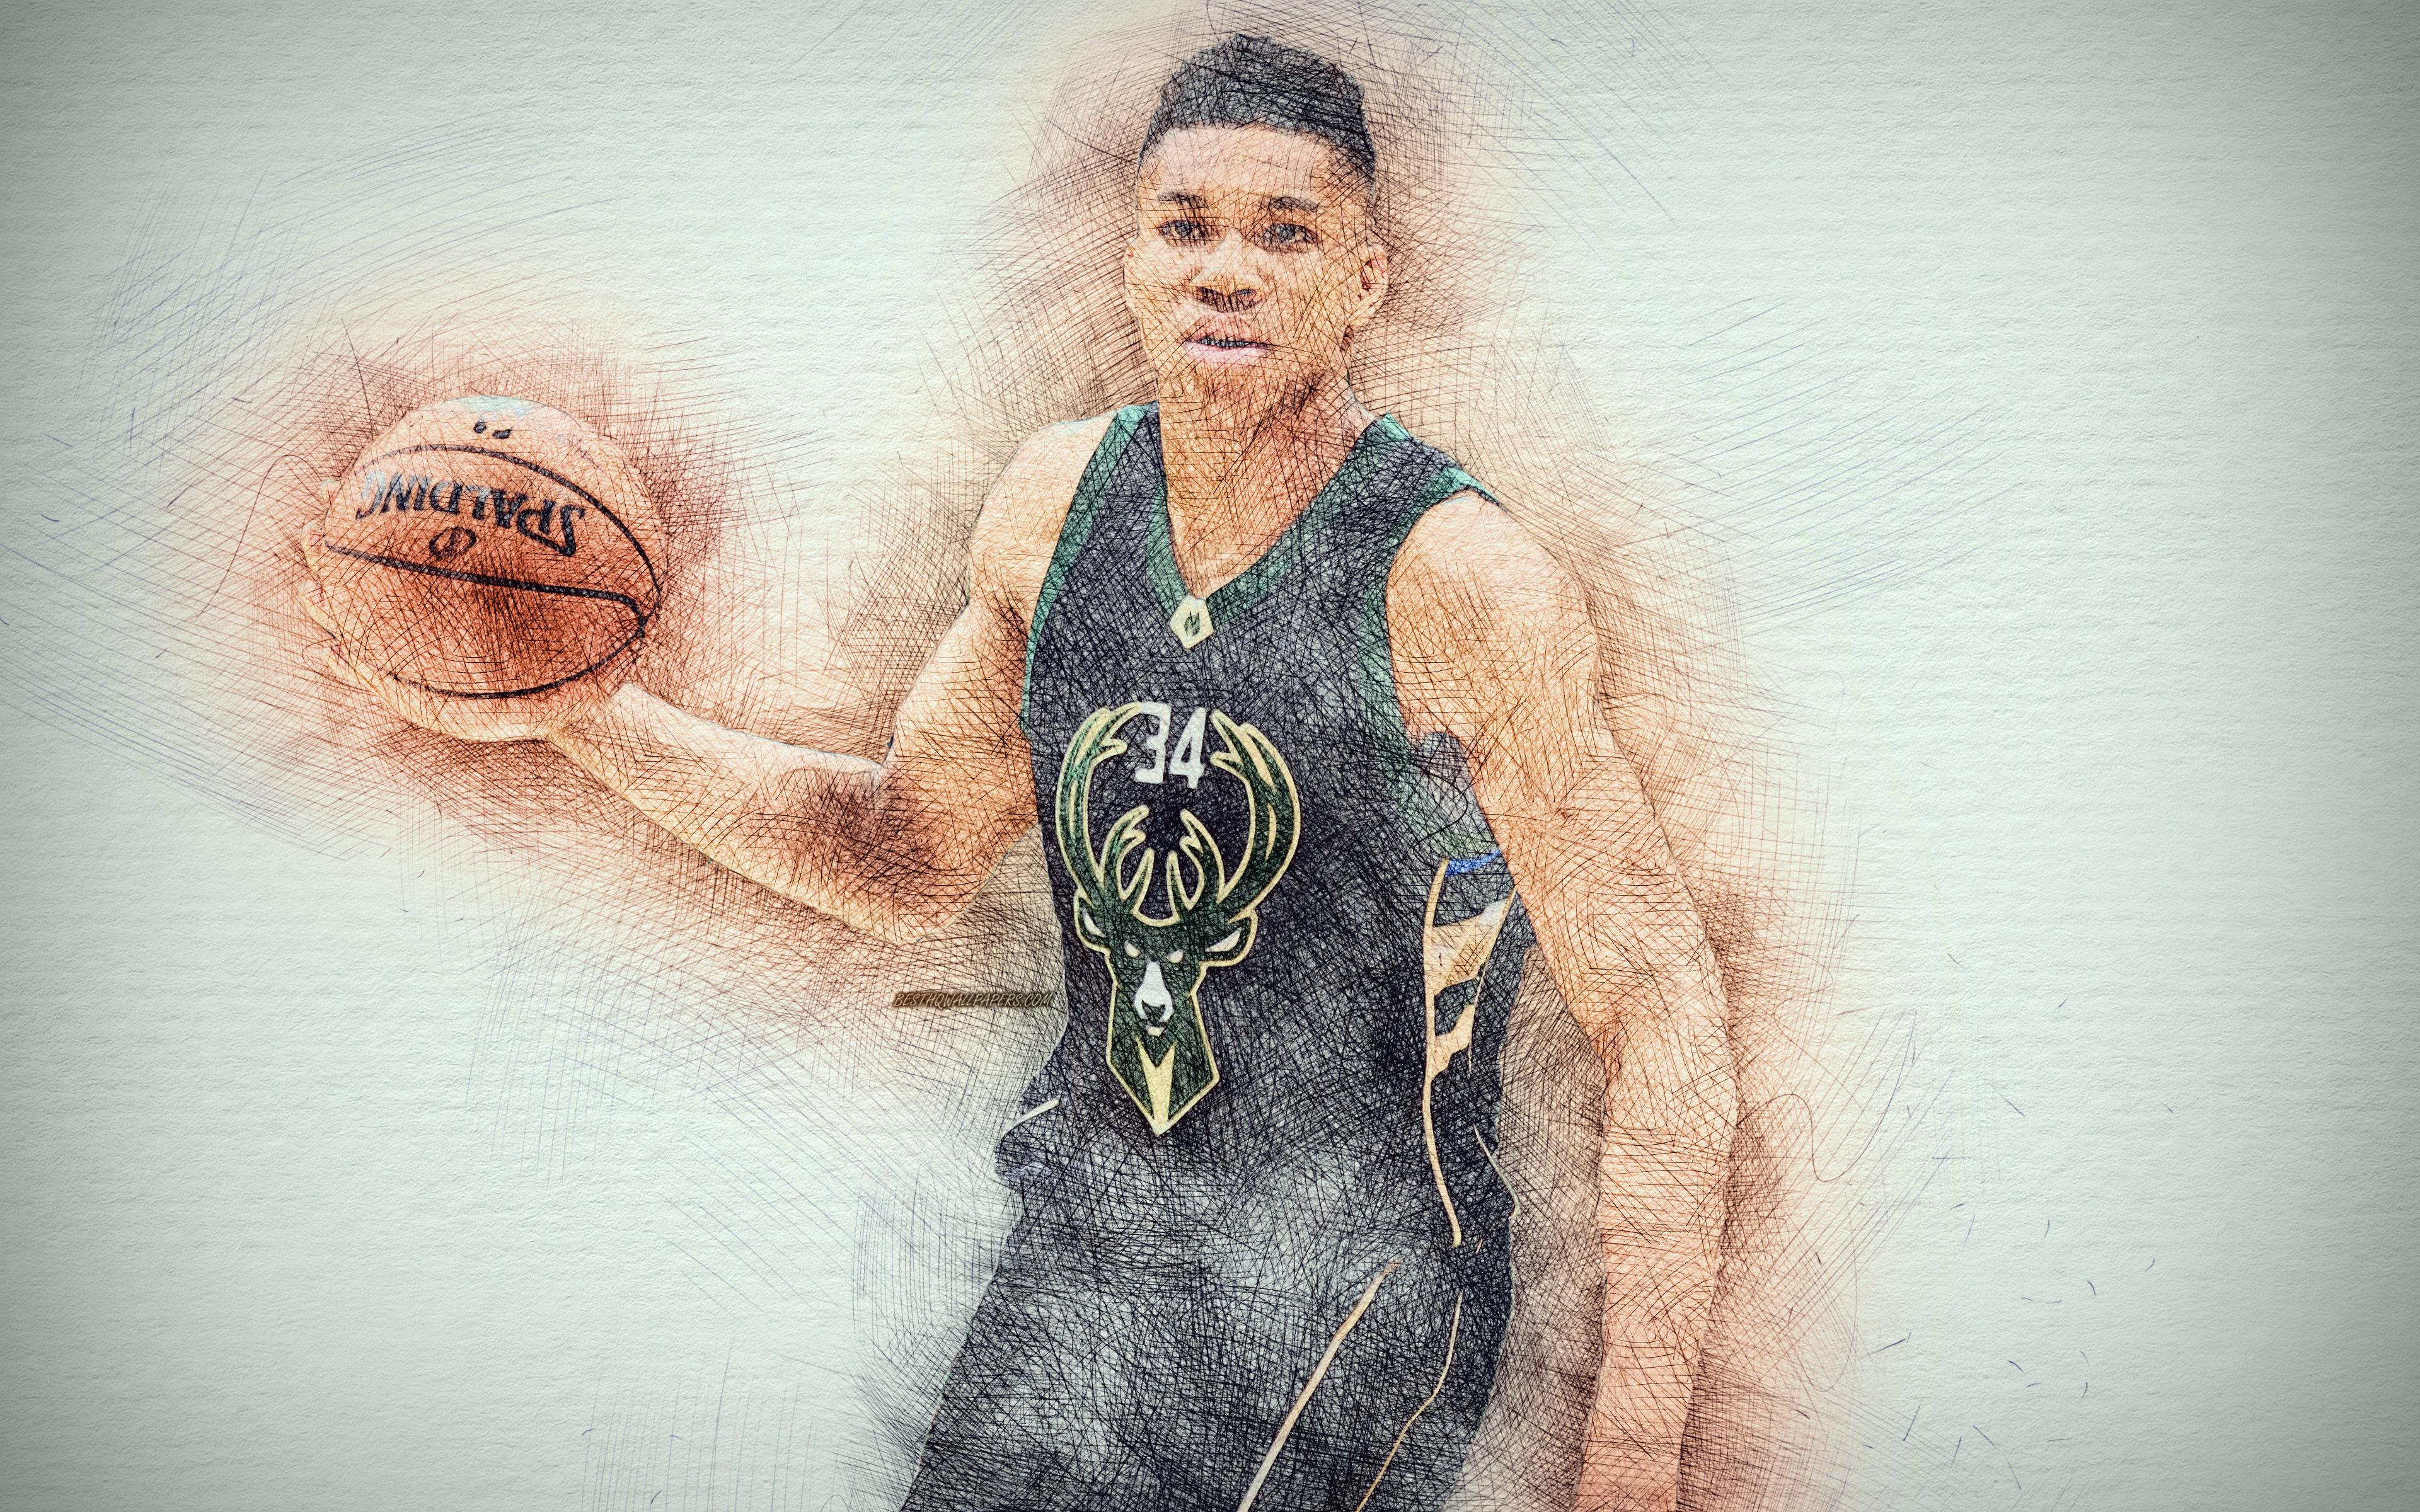 Cool Giannis Computer Wallpapers - Wallpaper Cave